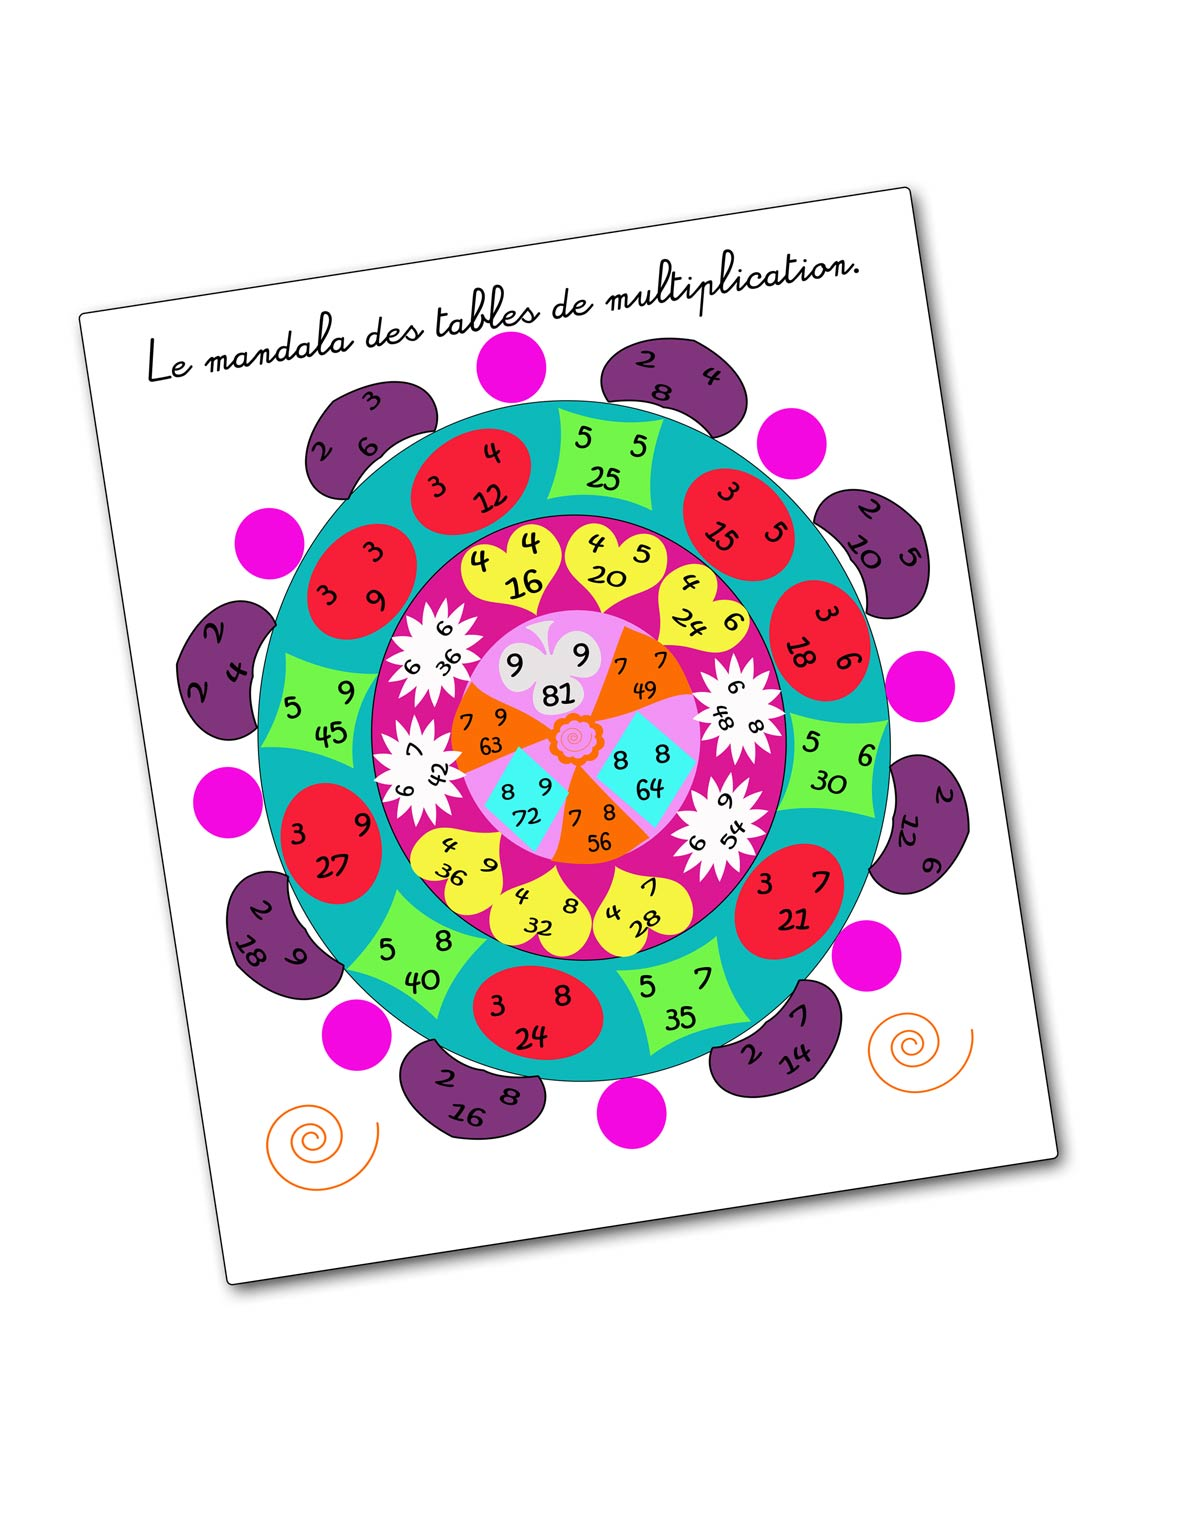 Mandala des tables de multiplication un monde meilleur for Multiplication de 8